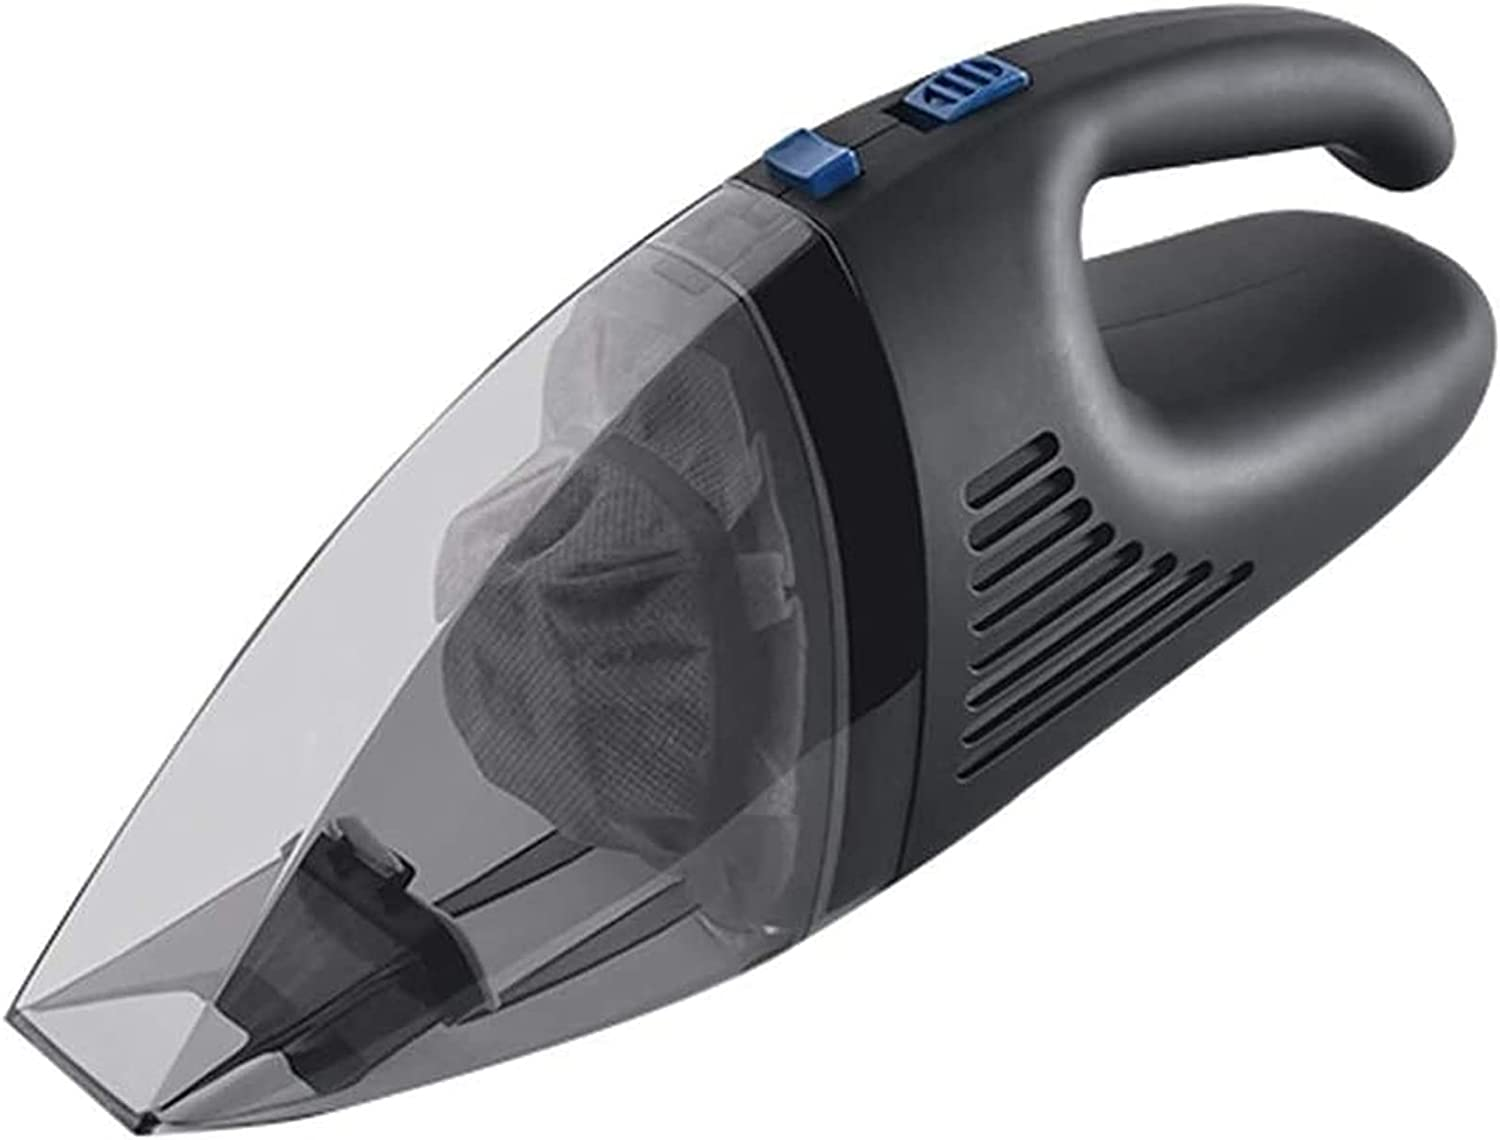 dusbuster Handheld OFFicial store Vacuum Cleaner,Portable Popular brand in the world